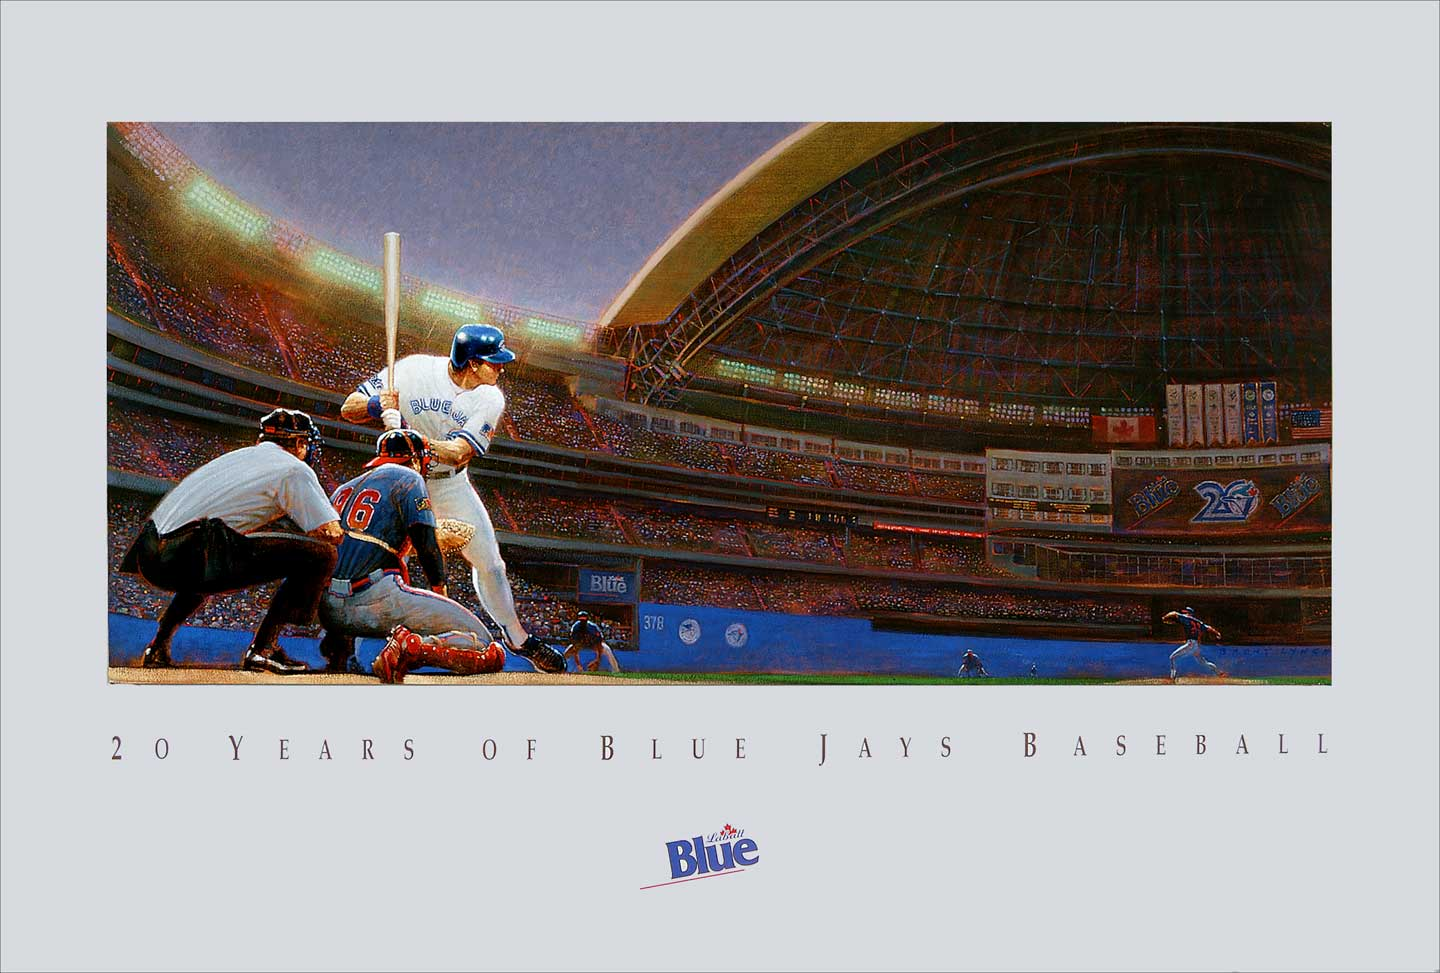 1989 Celebration of 20 years of Blue Jay Baseball. original artwork for the National Baseball League